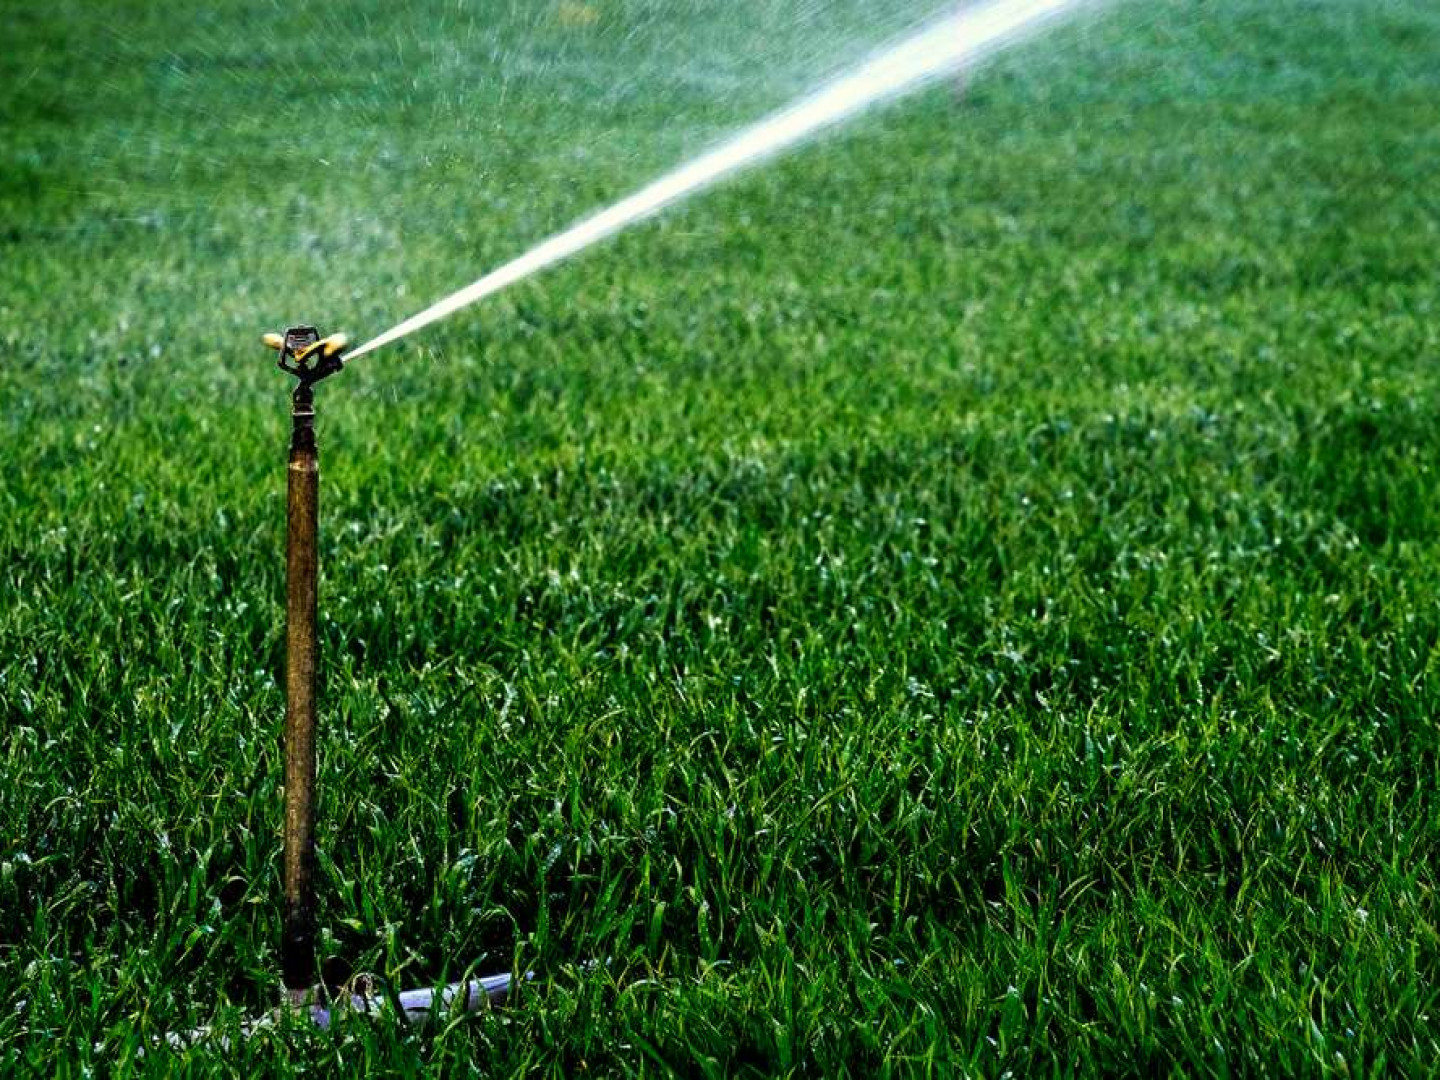 IRRIGATION SYSTEM REPAIR SERVICES IN MIDDLEBURG & LAKESIDE, FL